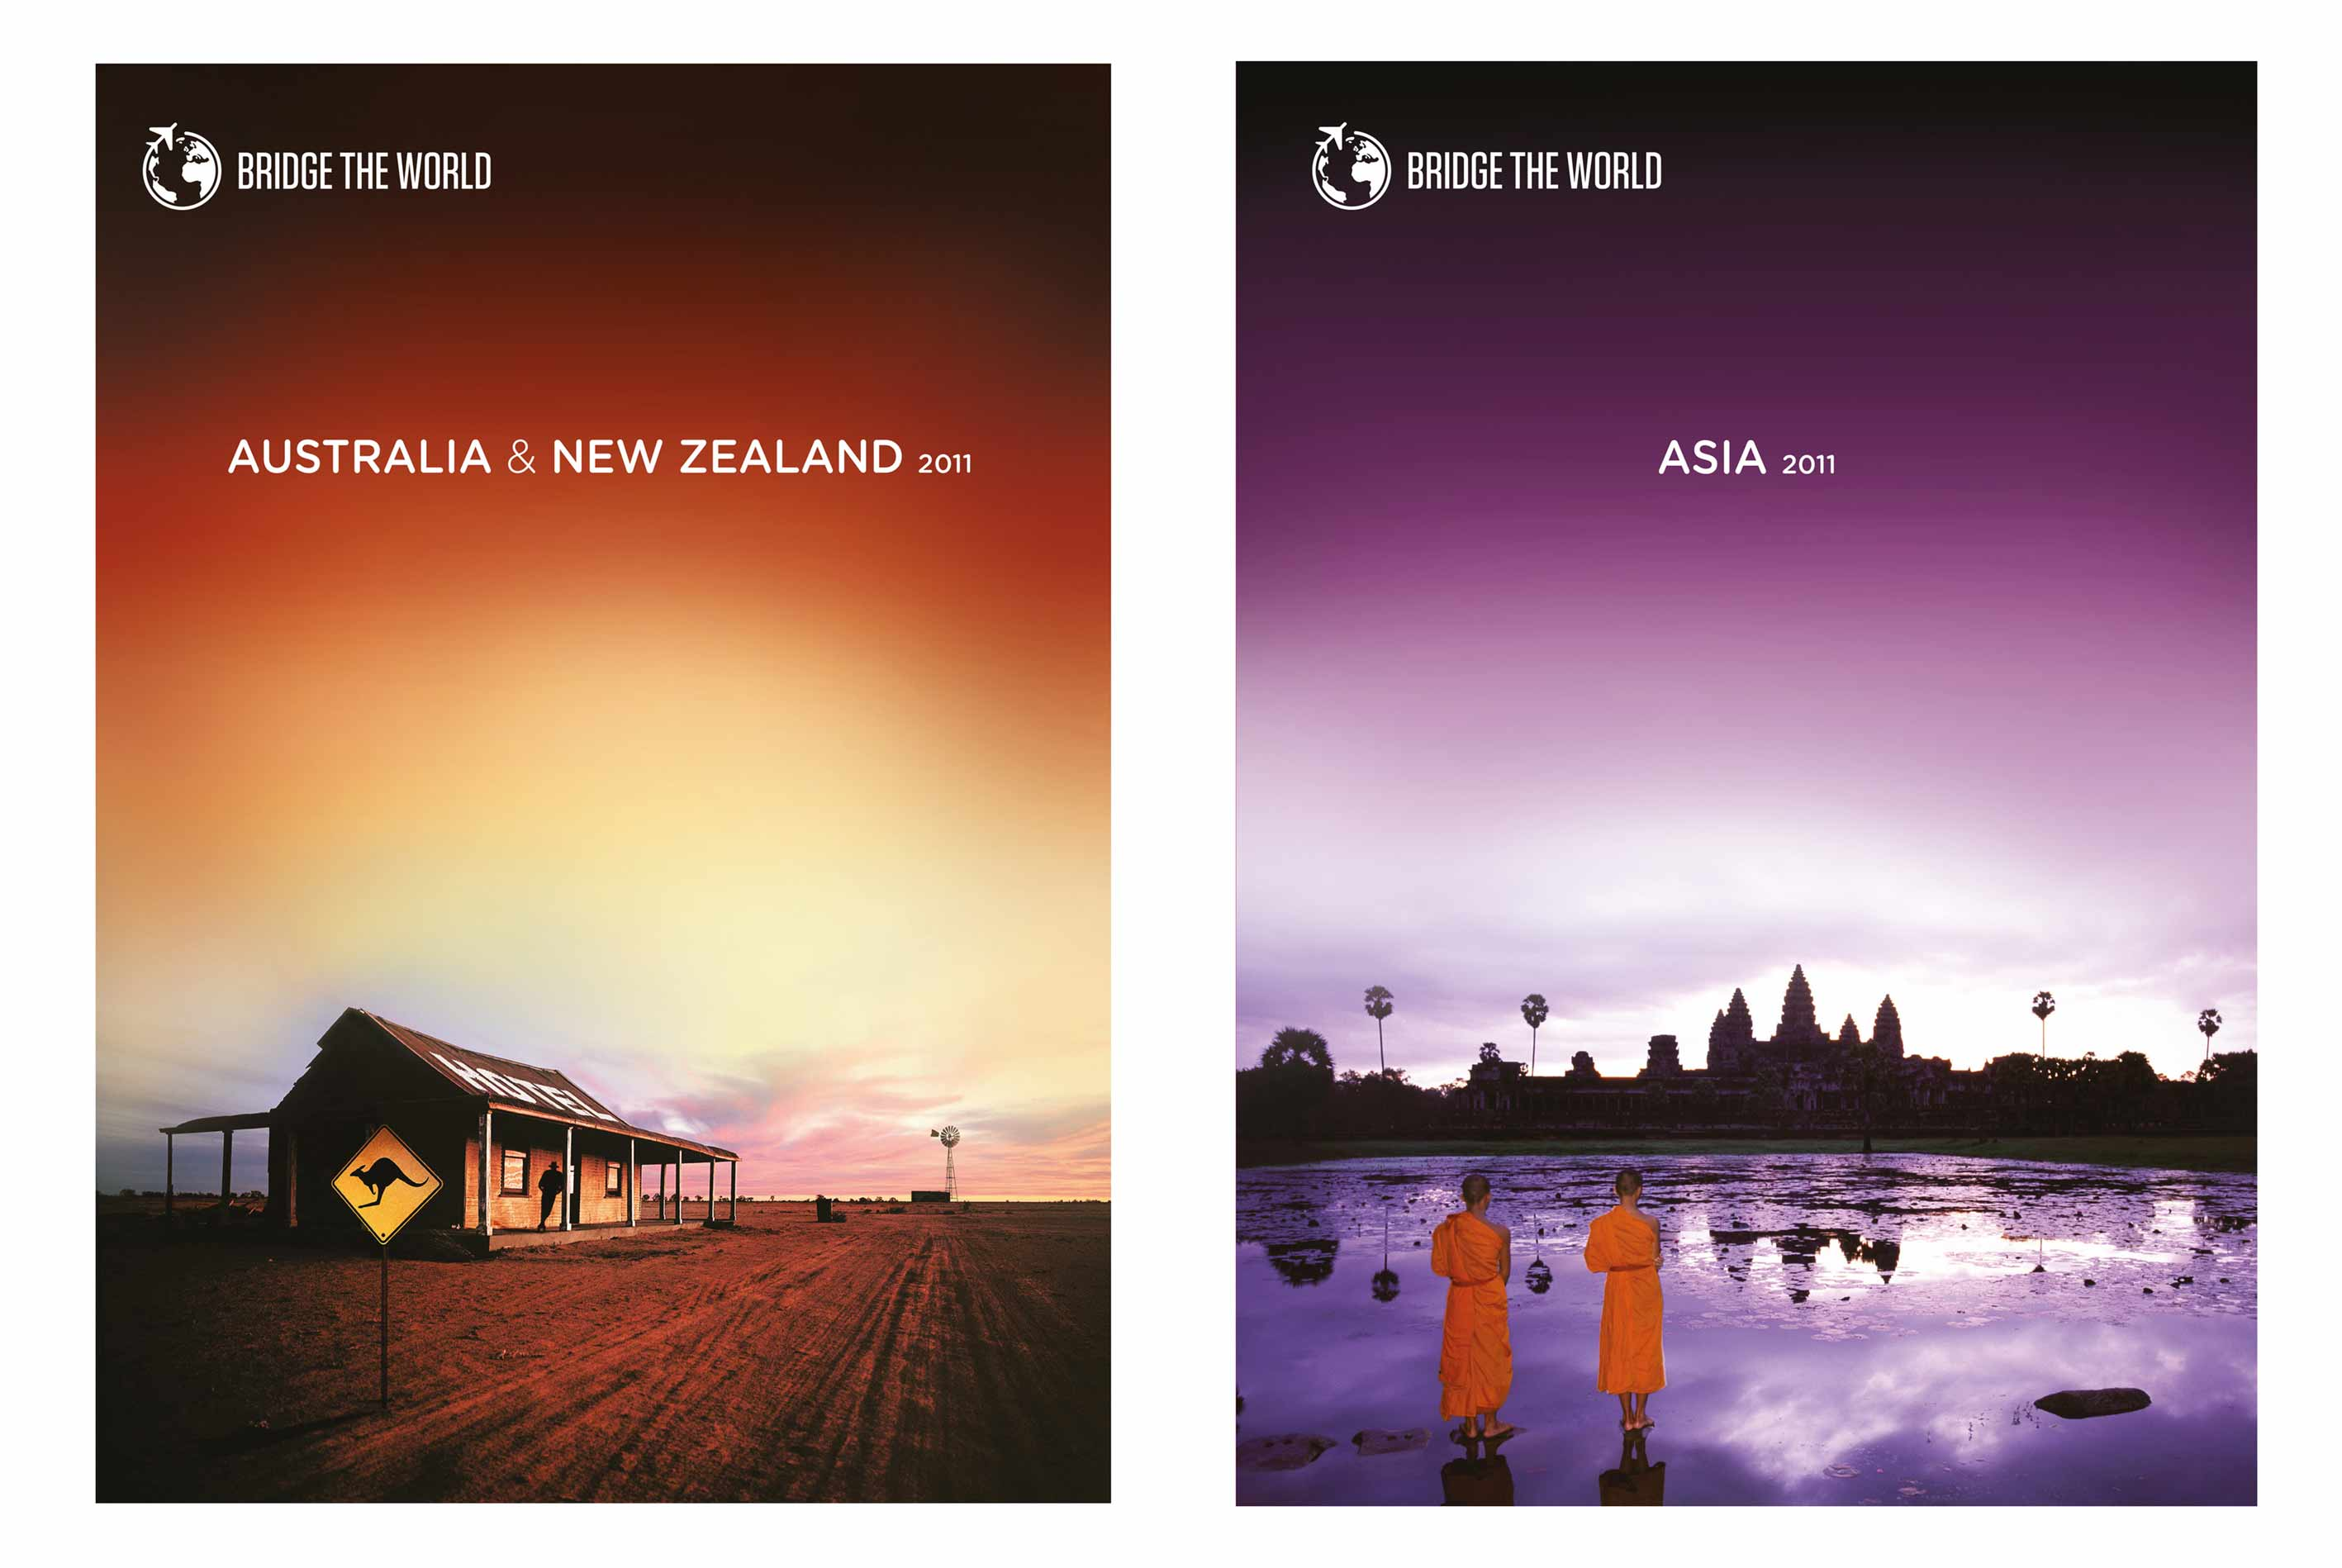 Bridge the World Oz & Asia Covers